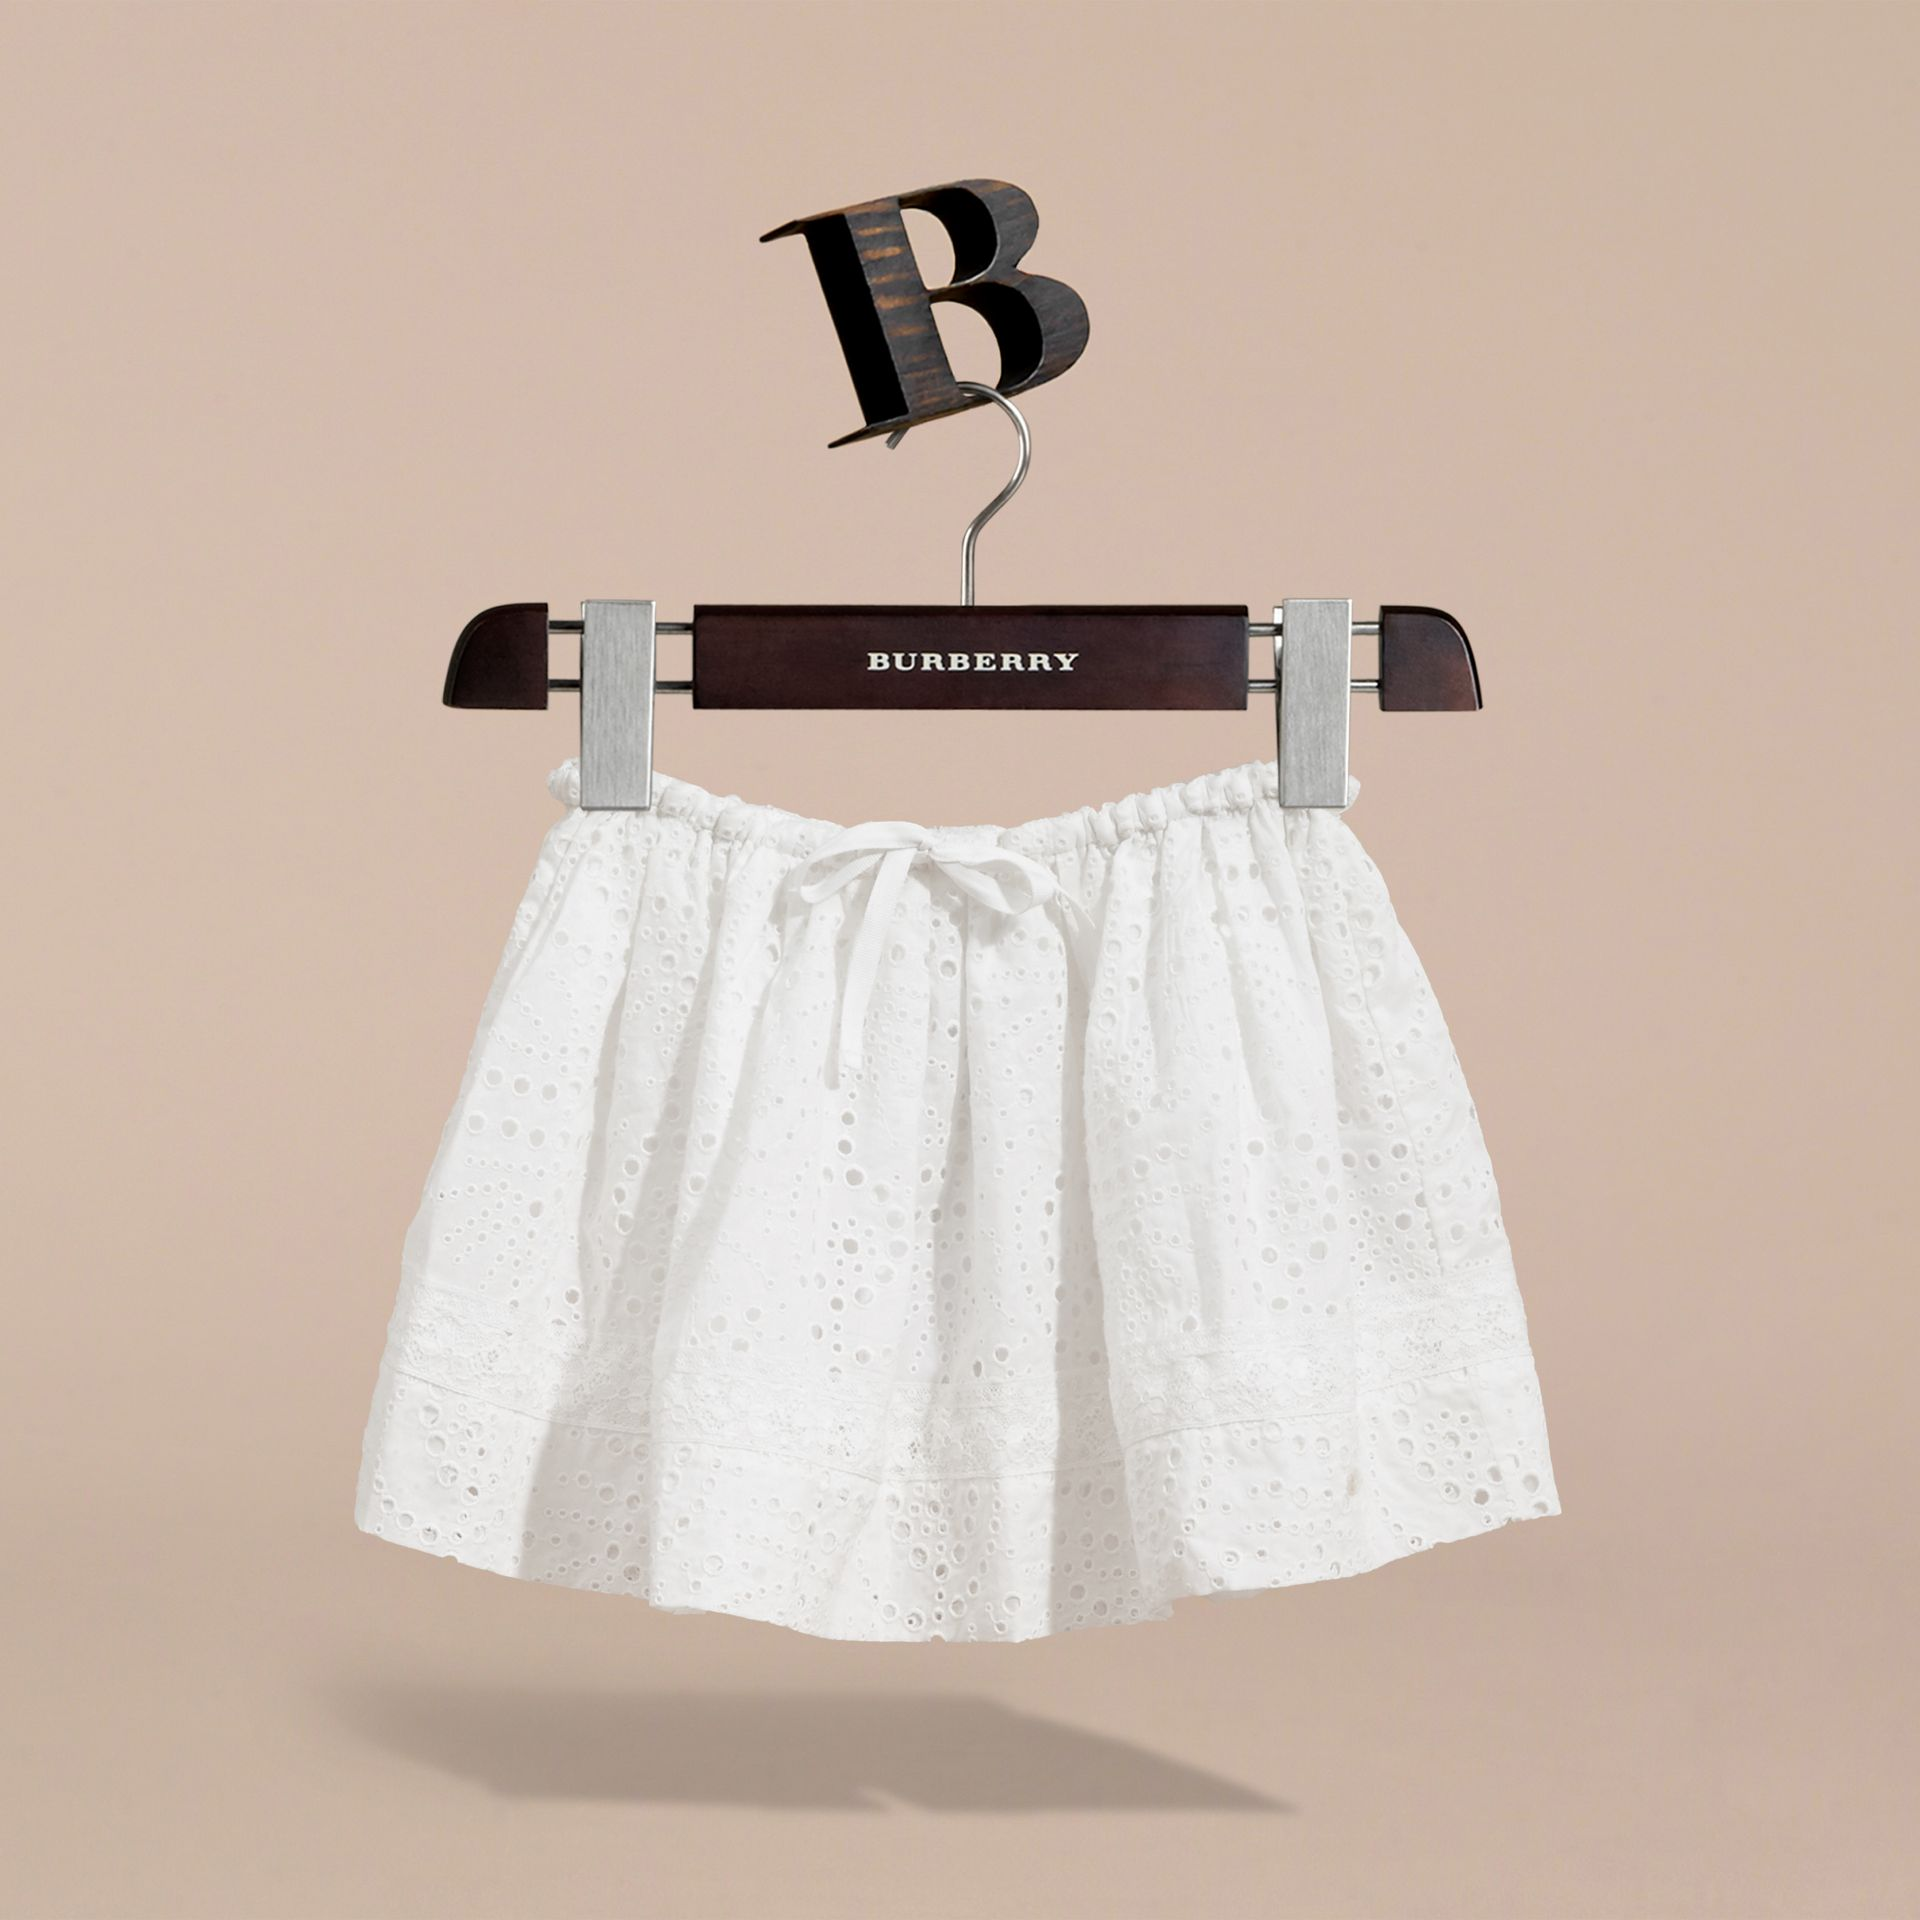 Broderie Anglaise Cotton Skirt with Lace Trim in White | Burberry - gallery image 3